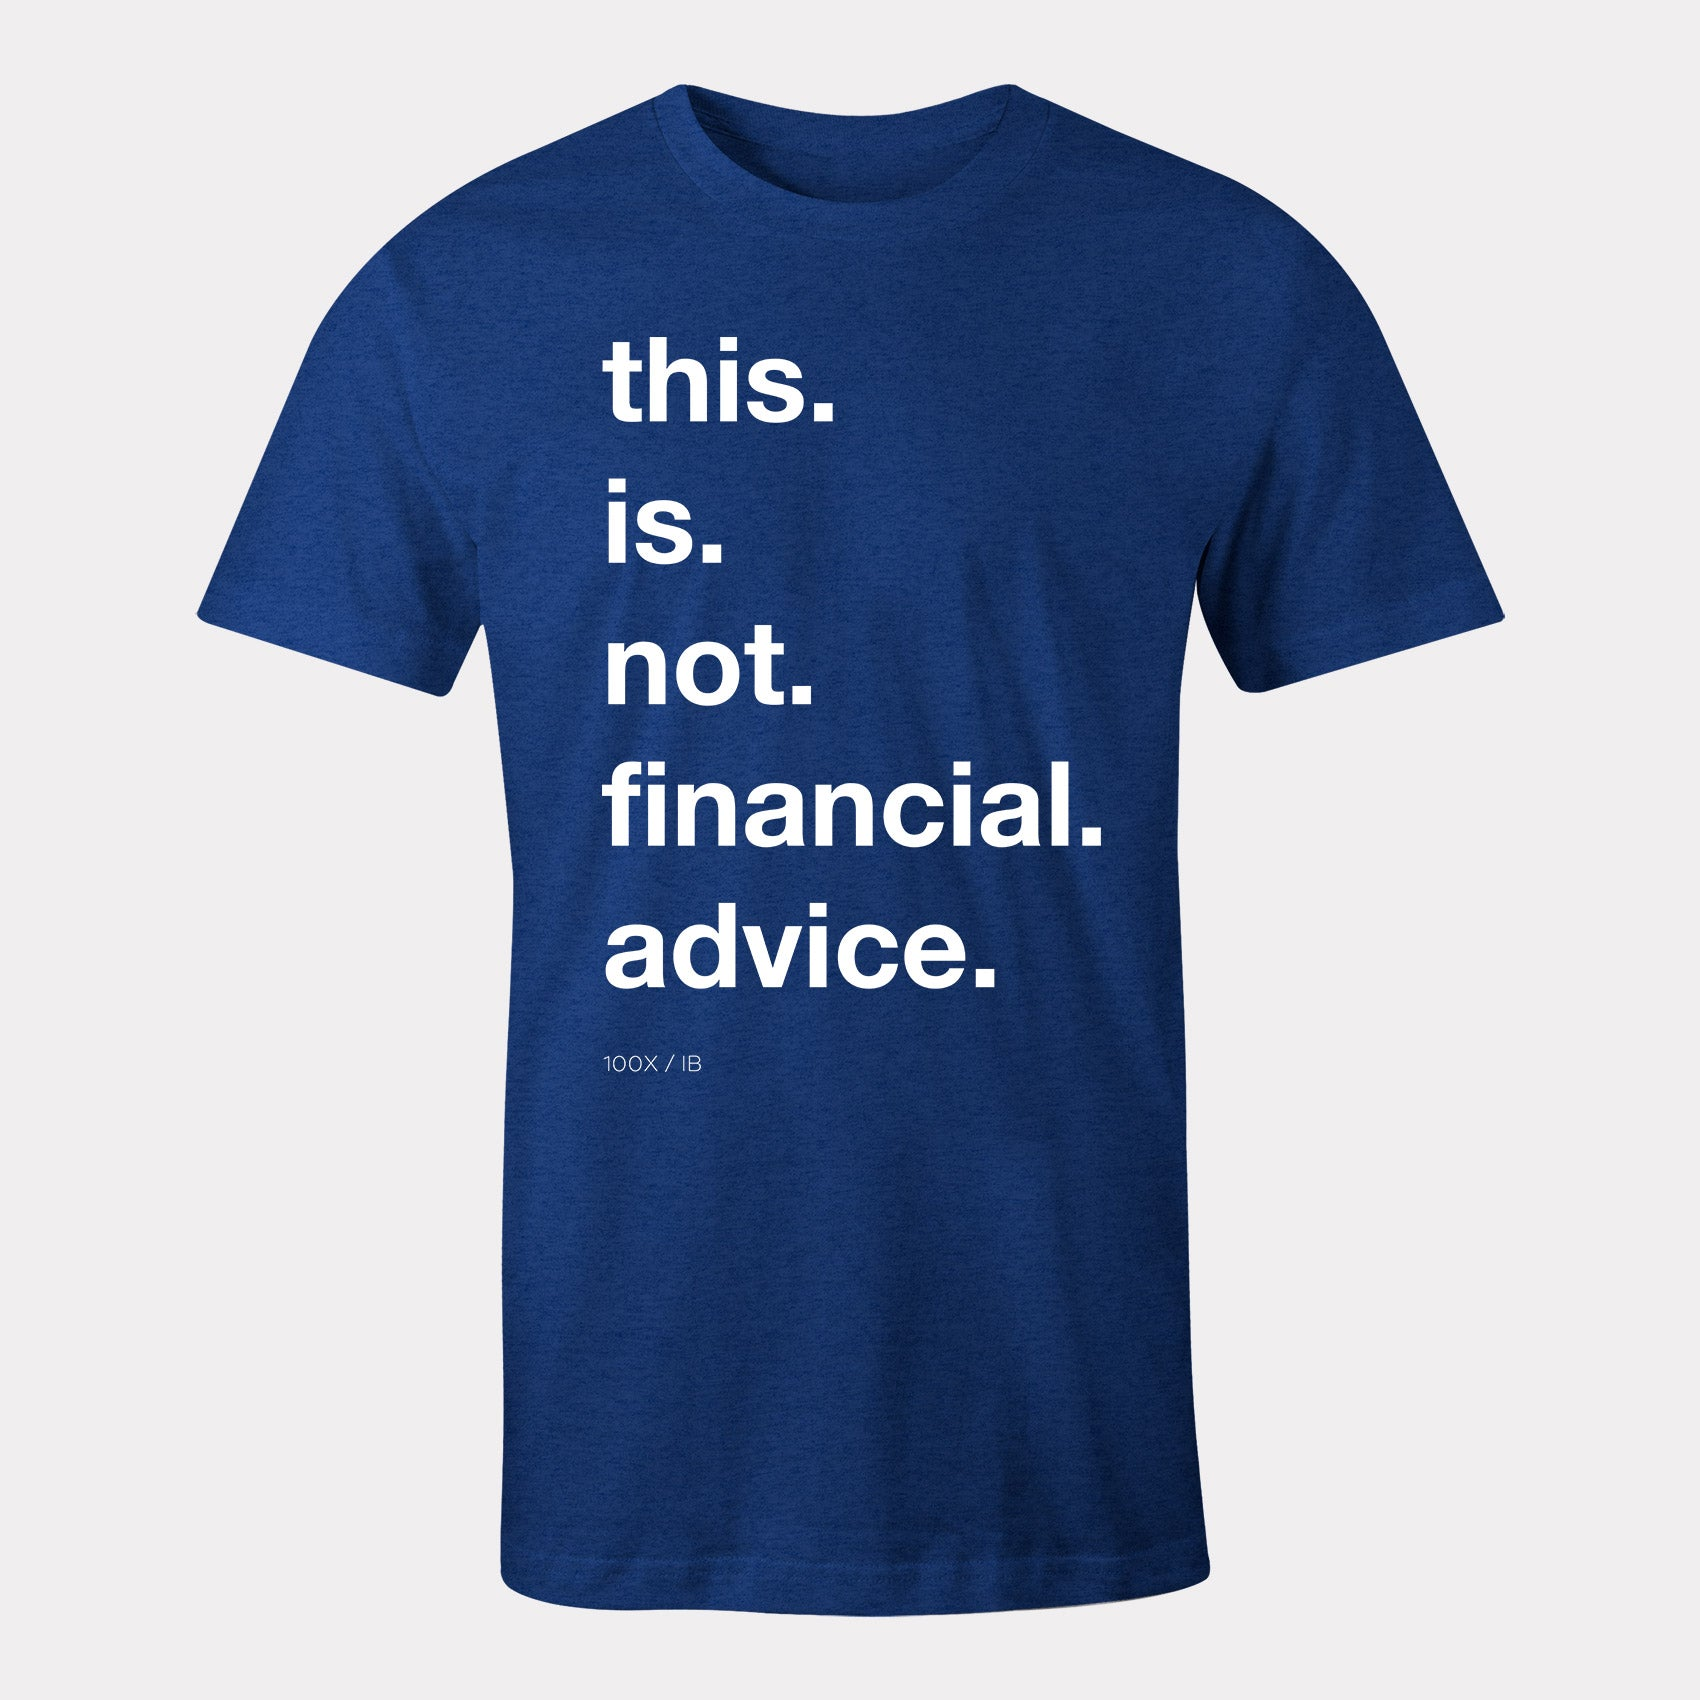 not financial advice clothing